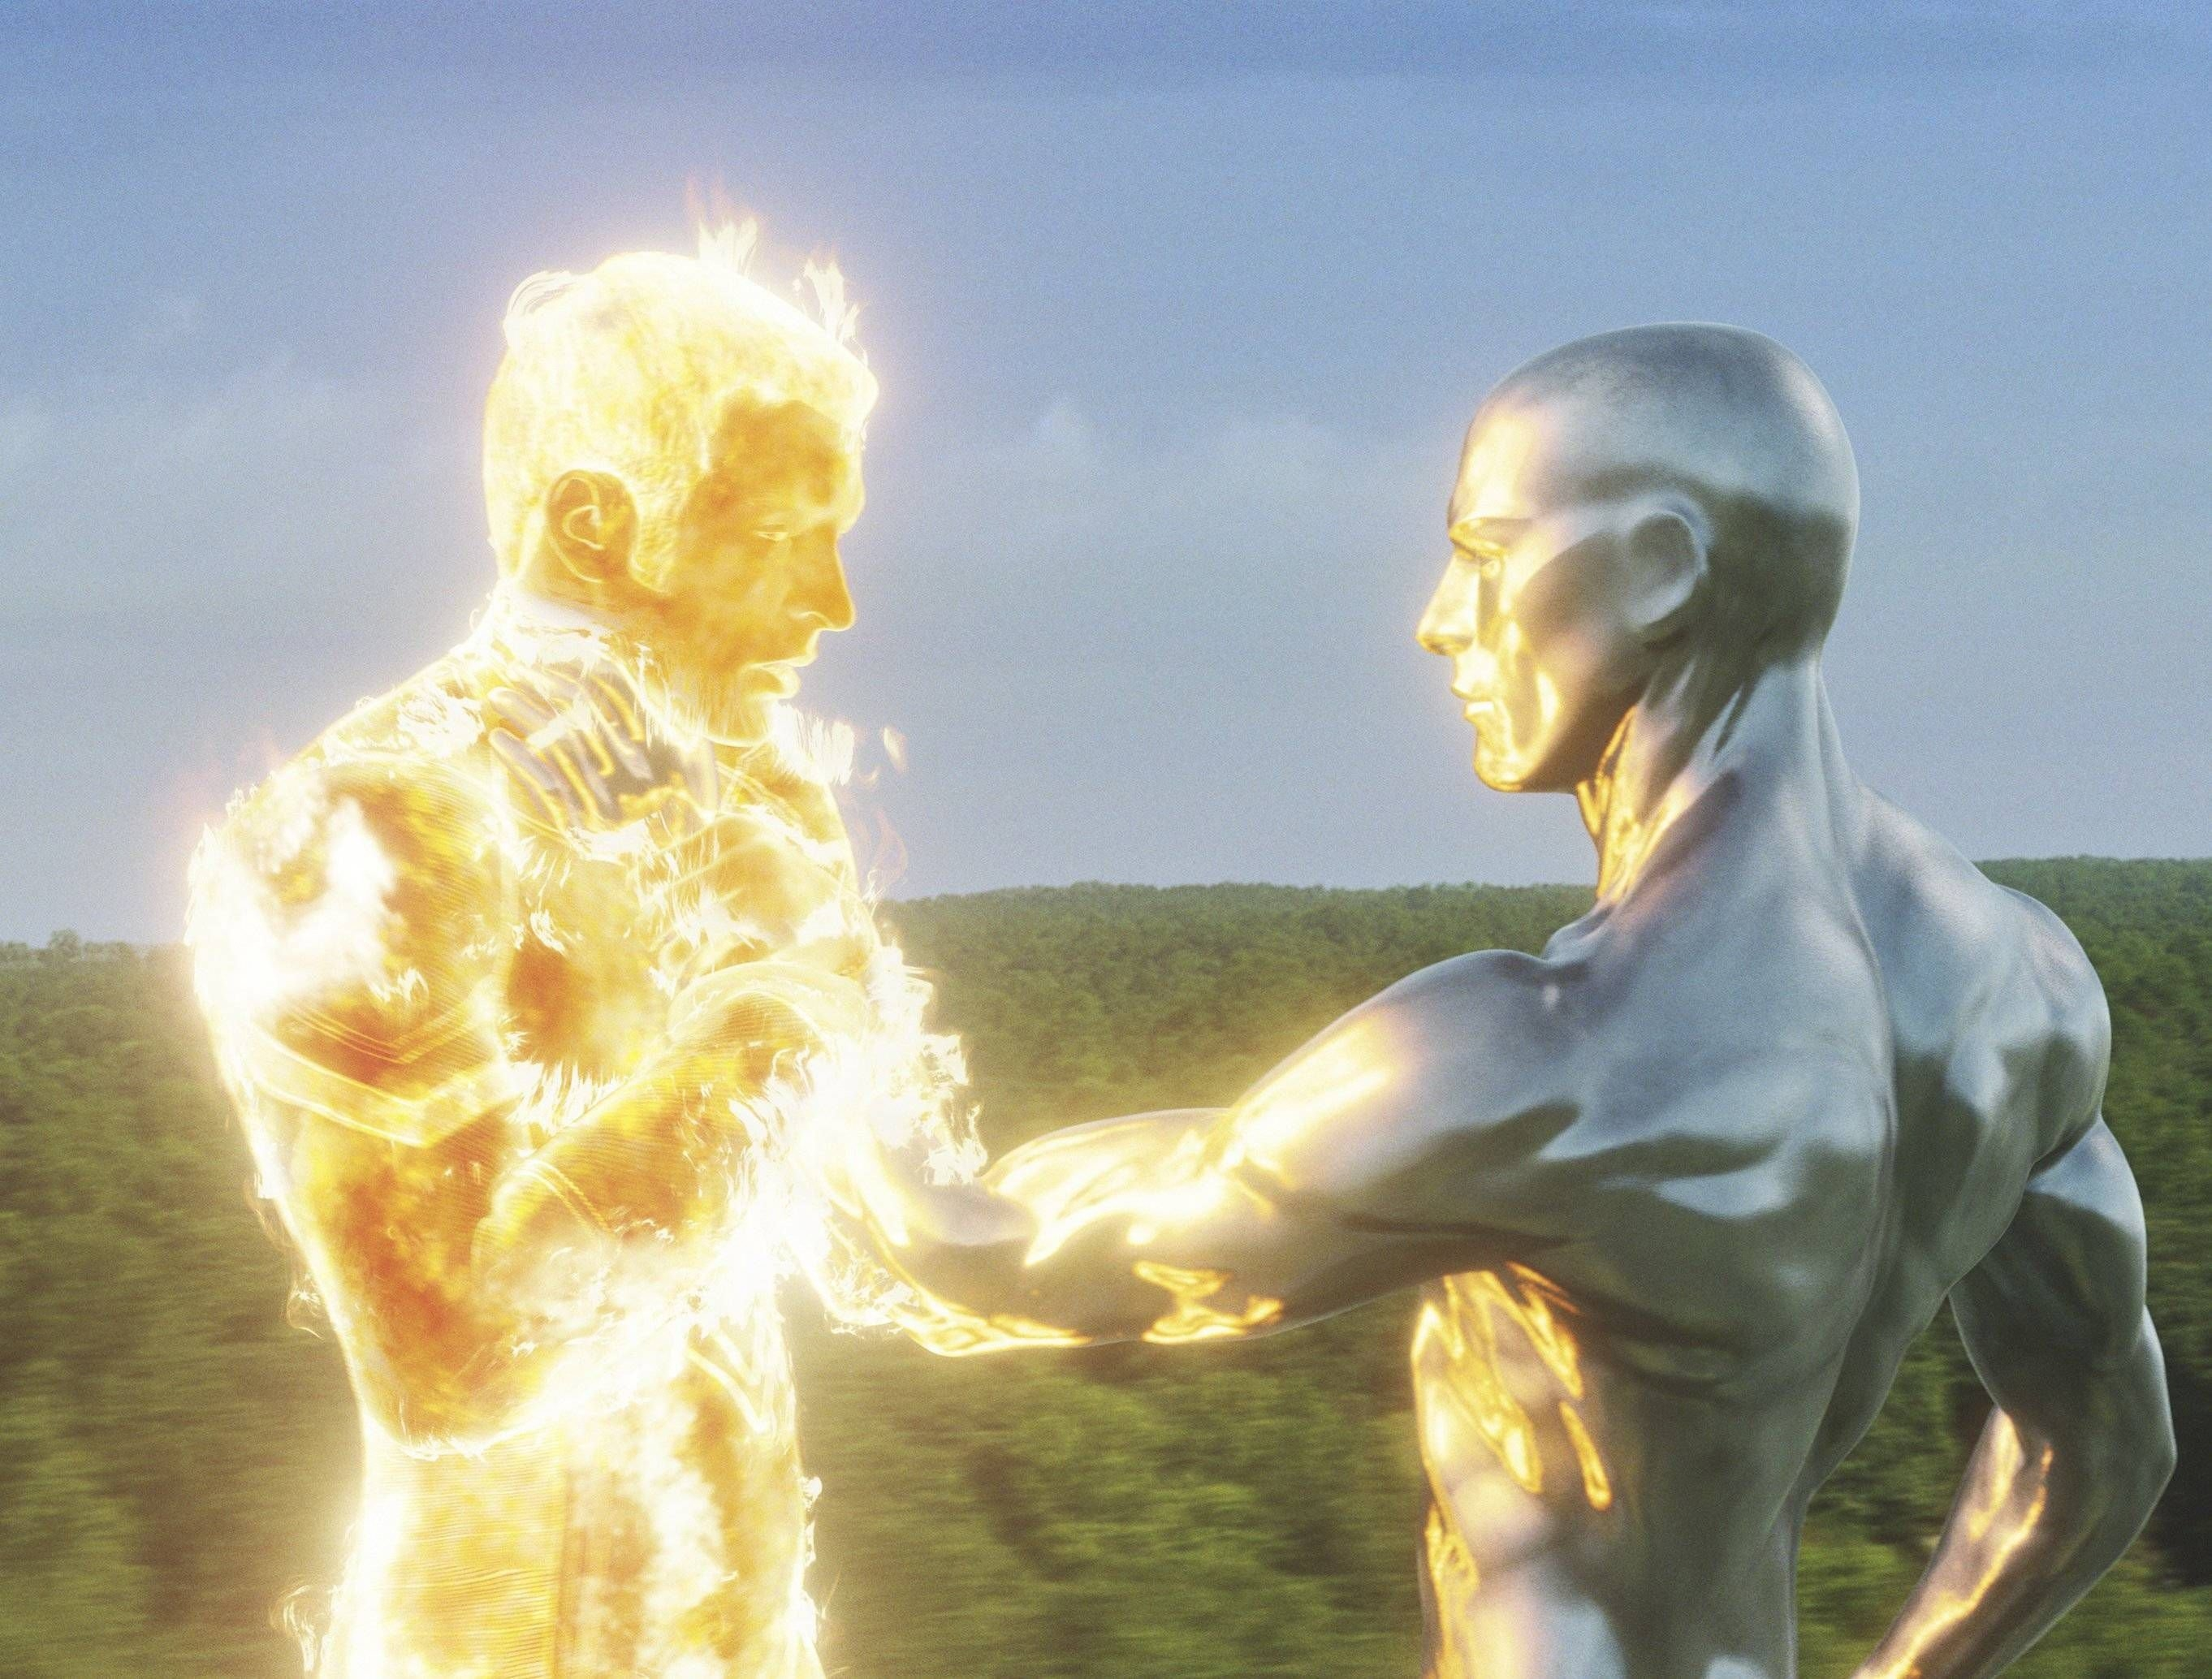 fantastic 4 silver surfer chocking the human torch